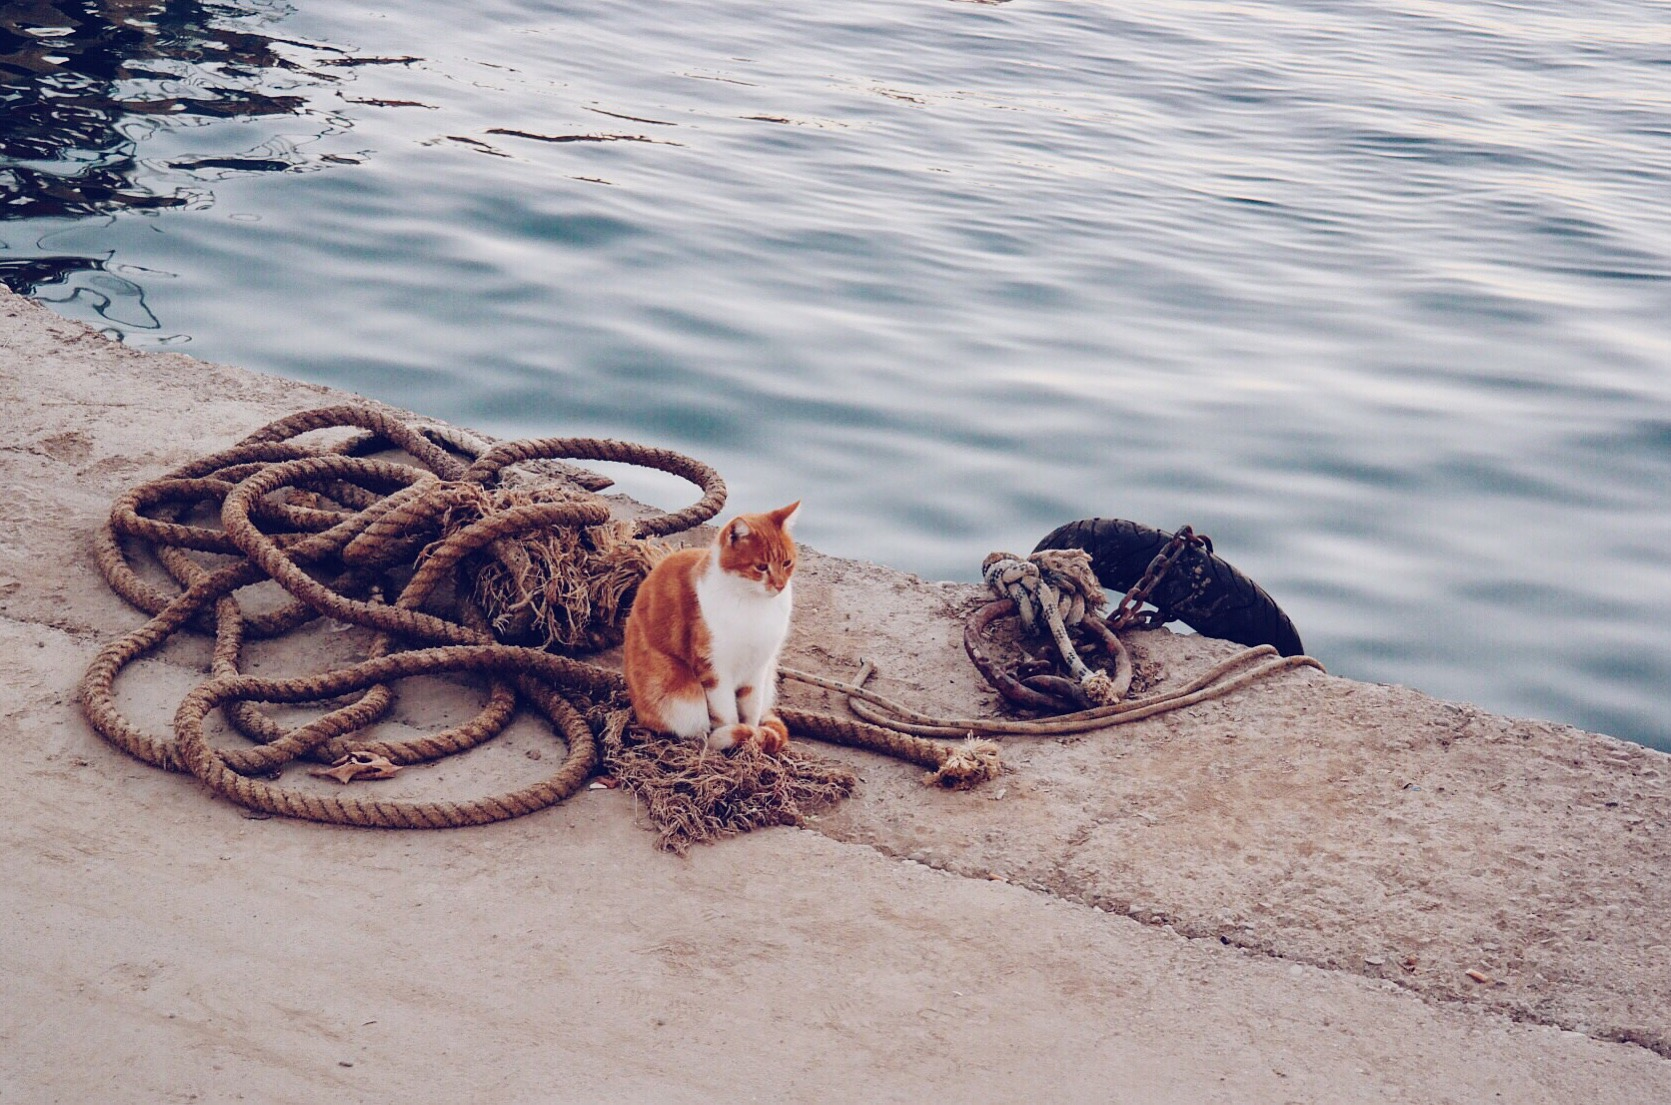 A cat waiting for fish